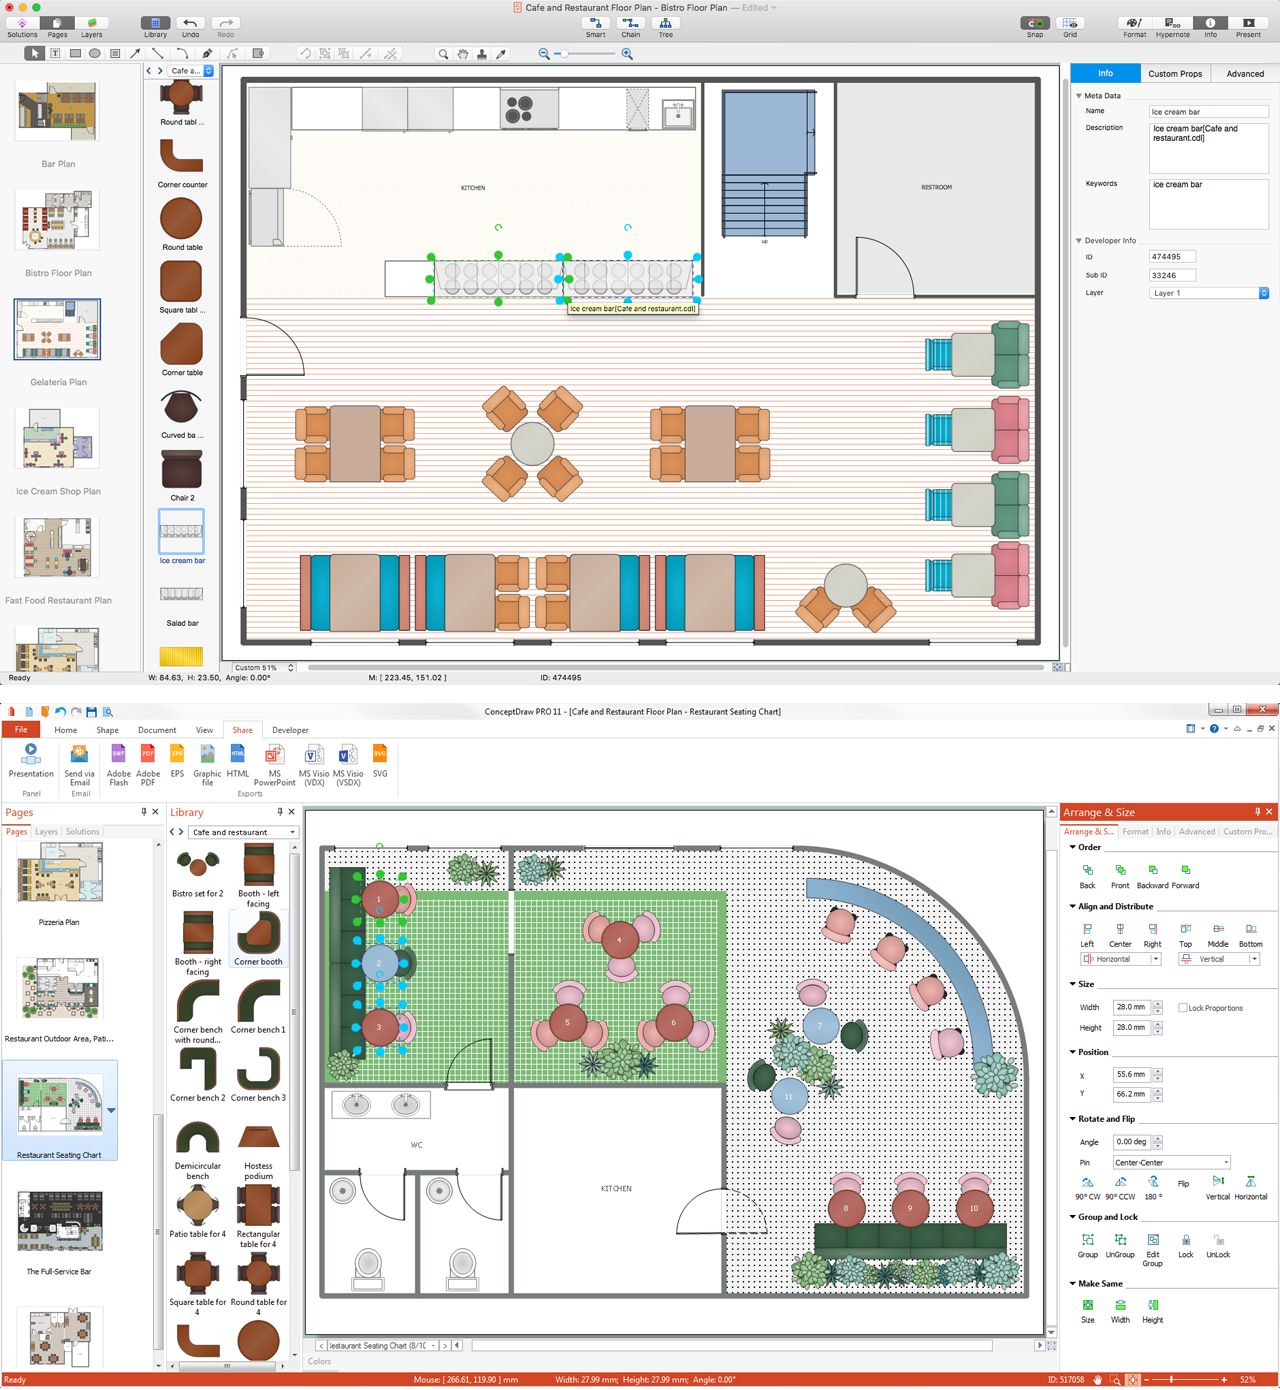 Interior design software building plan examples Building layout software free